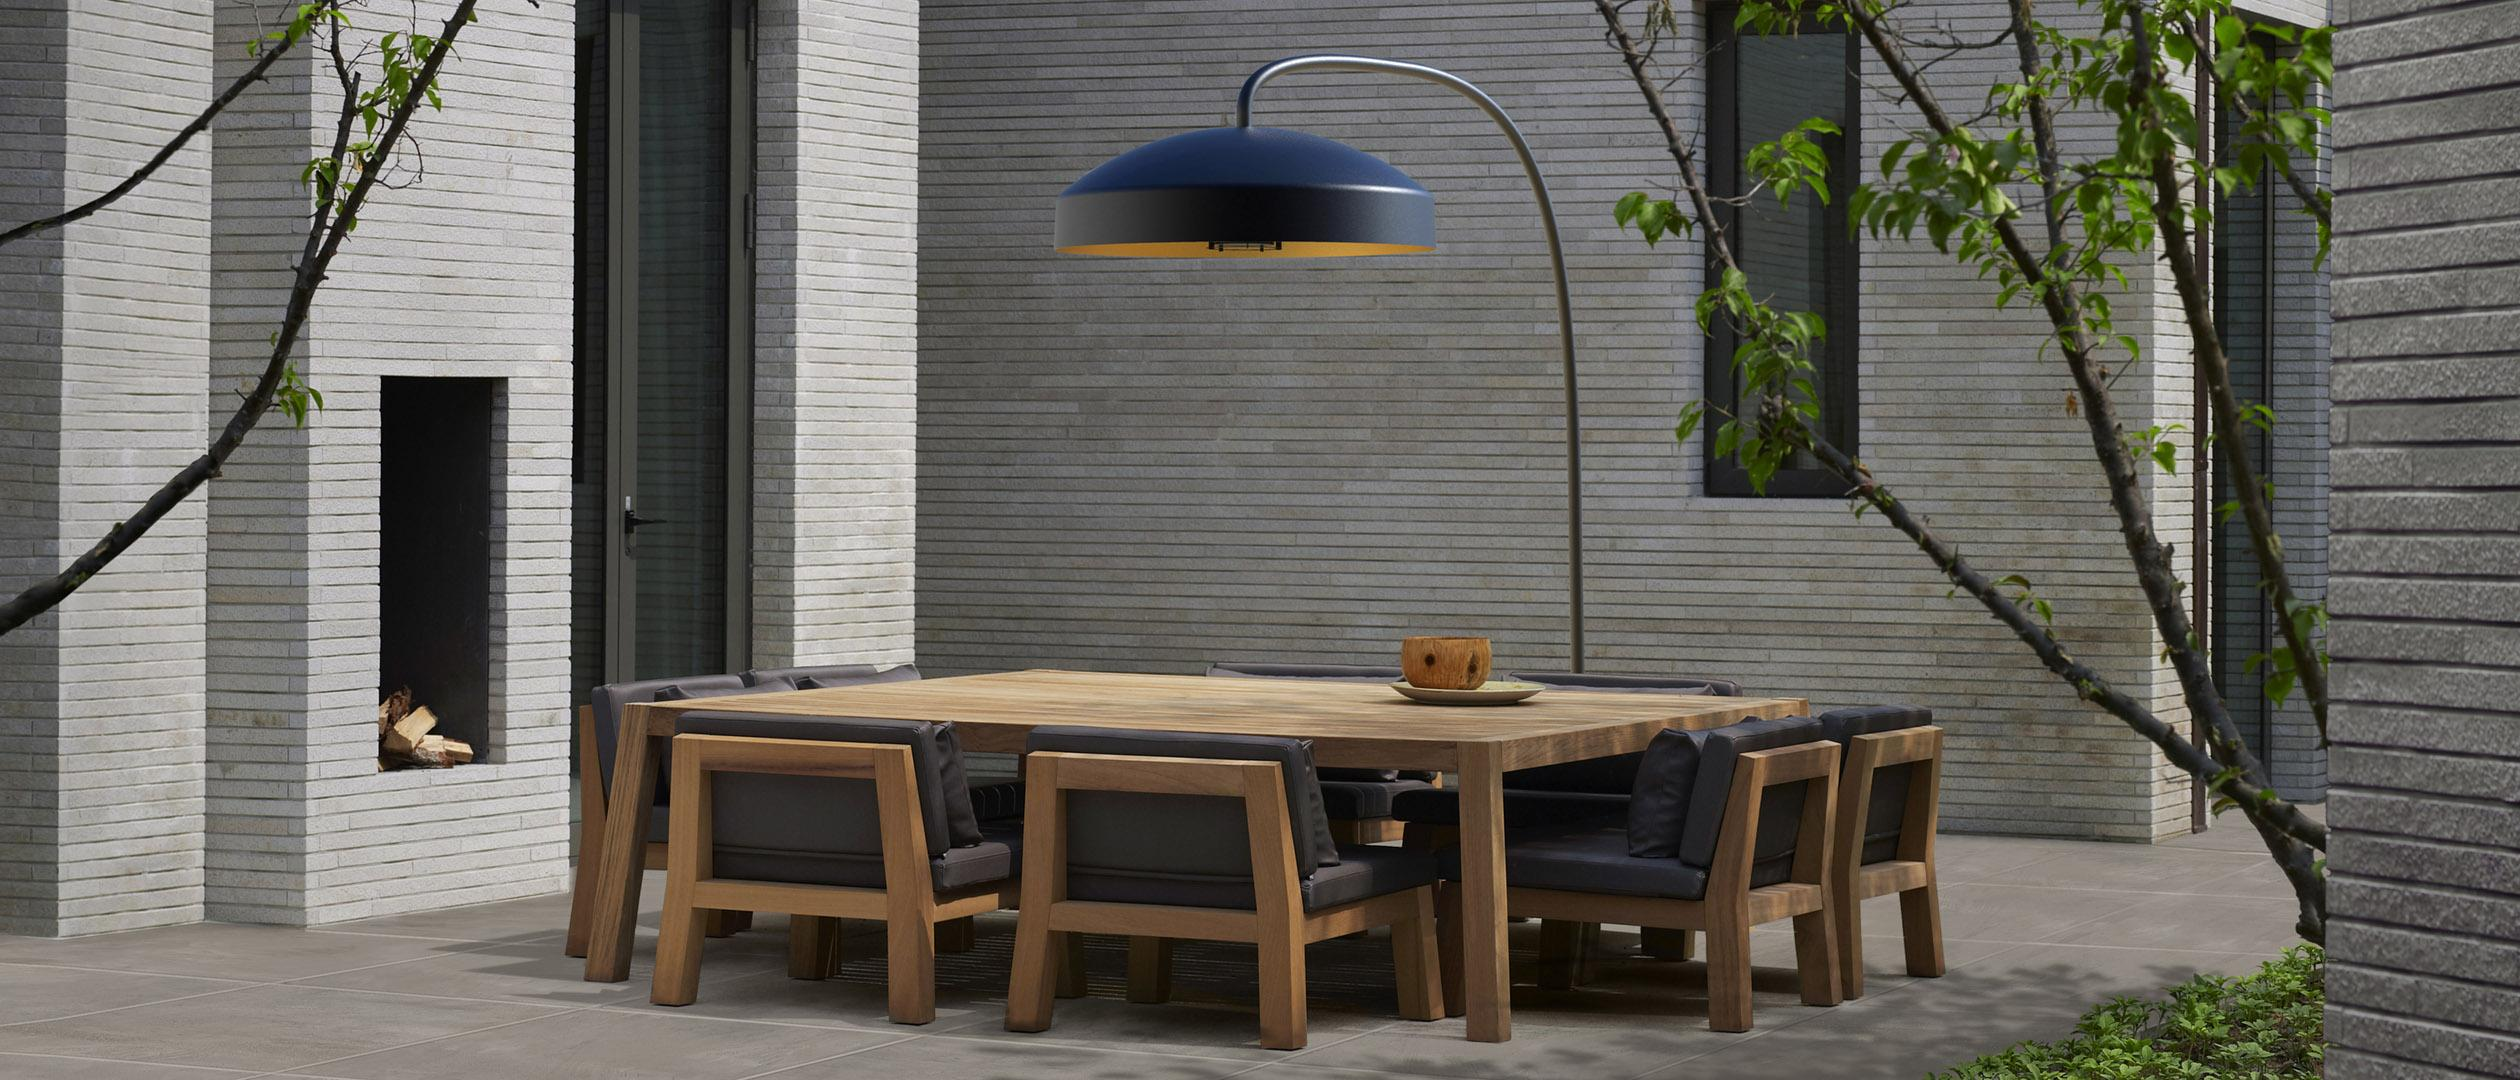 Outdoor furniture, patio heater and outdoor tiles